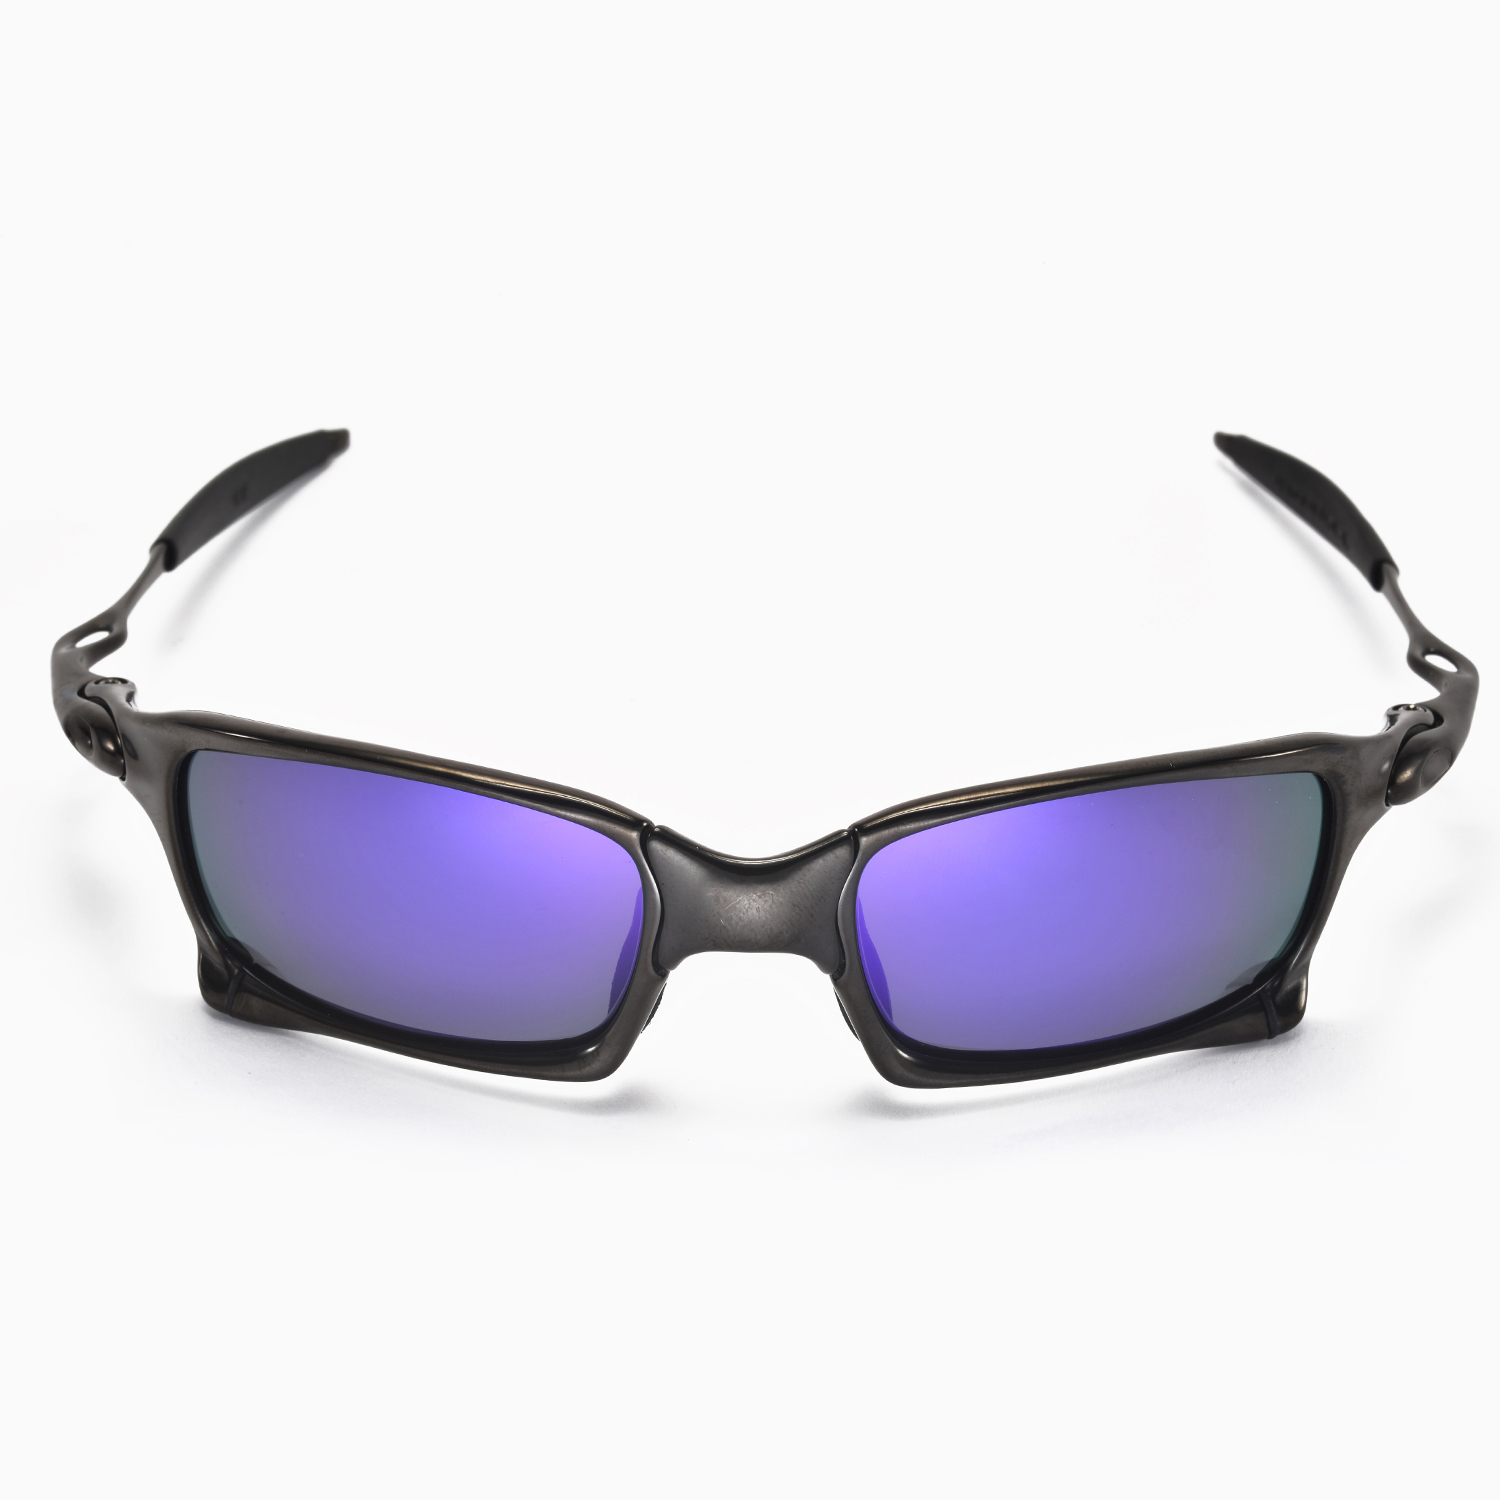 c269be5818 Oakley X Squared Polarized Replacement Lenses « Heritage Malta